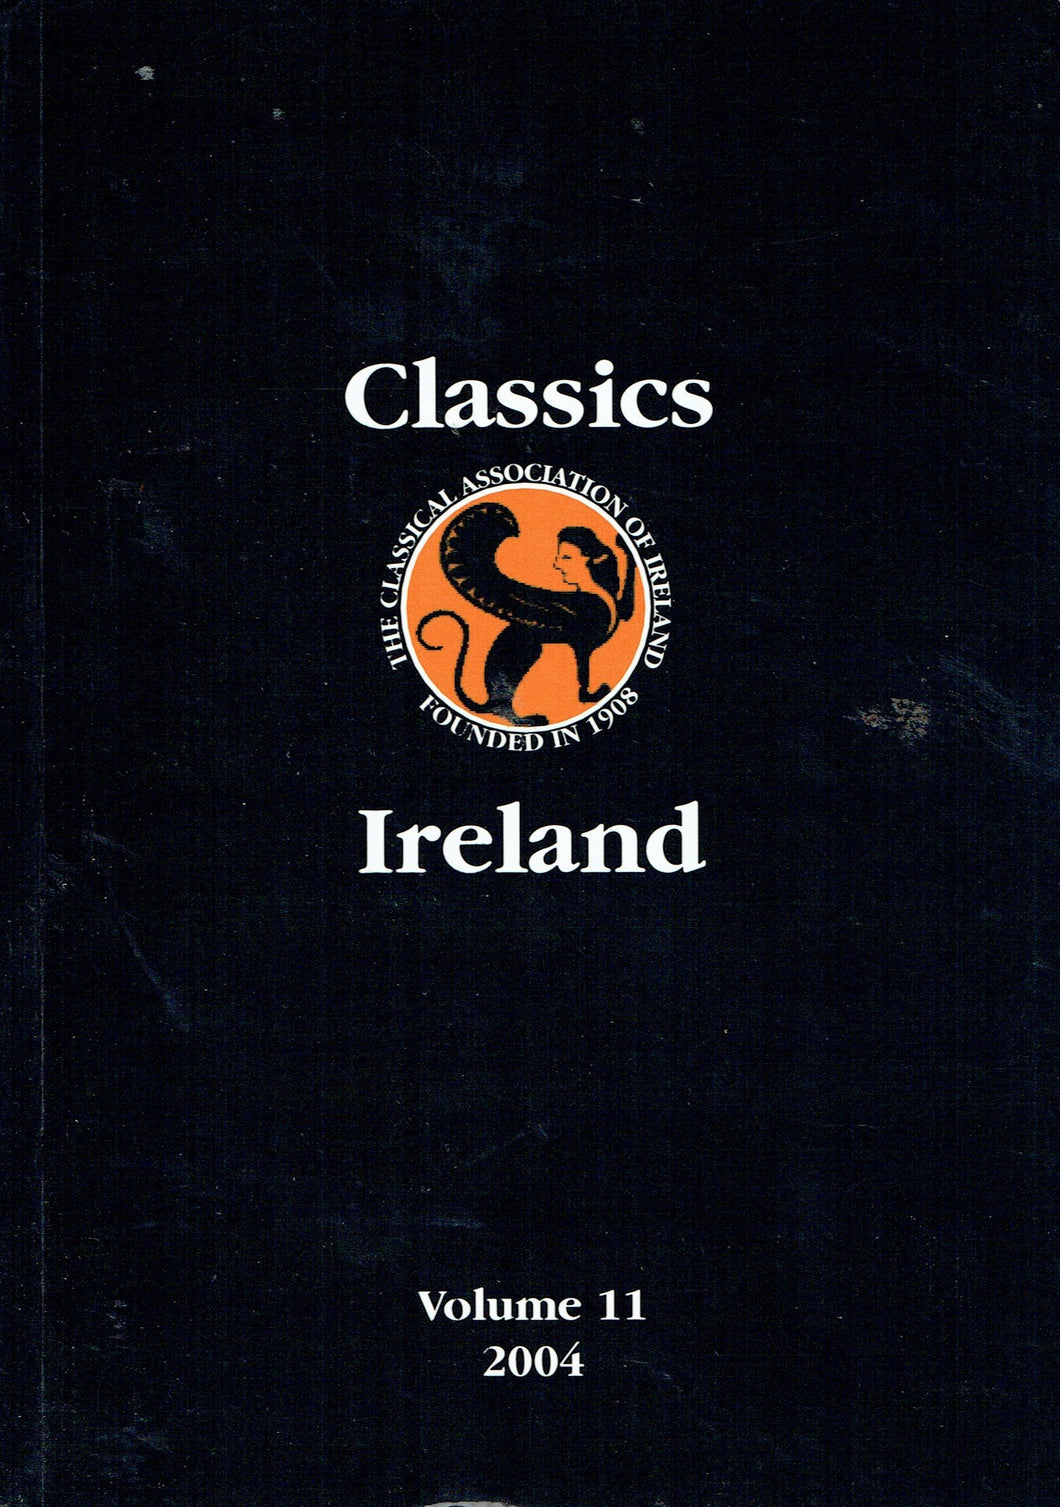 Classics Ireland - Journal of the Classical Association of Ireland, Volume 11, 2004